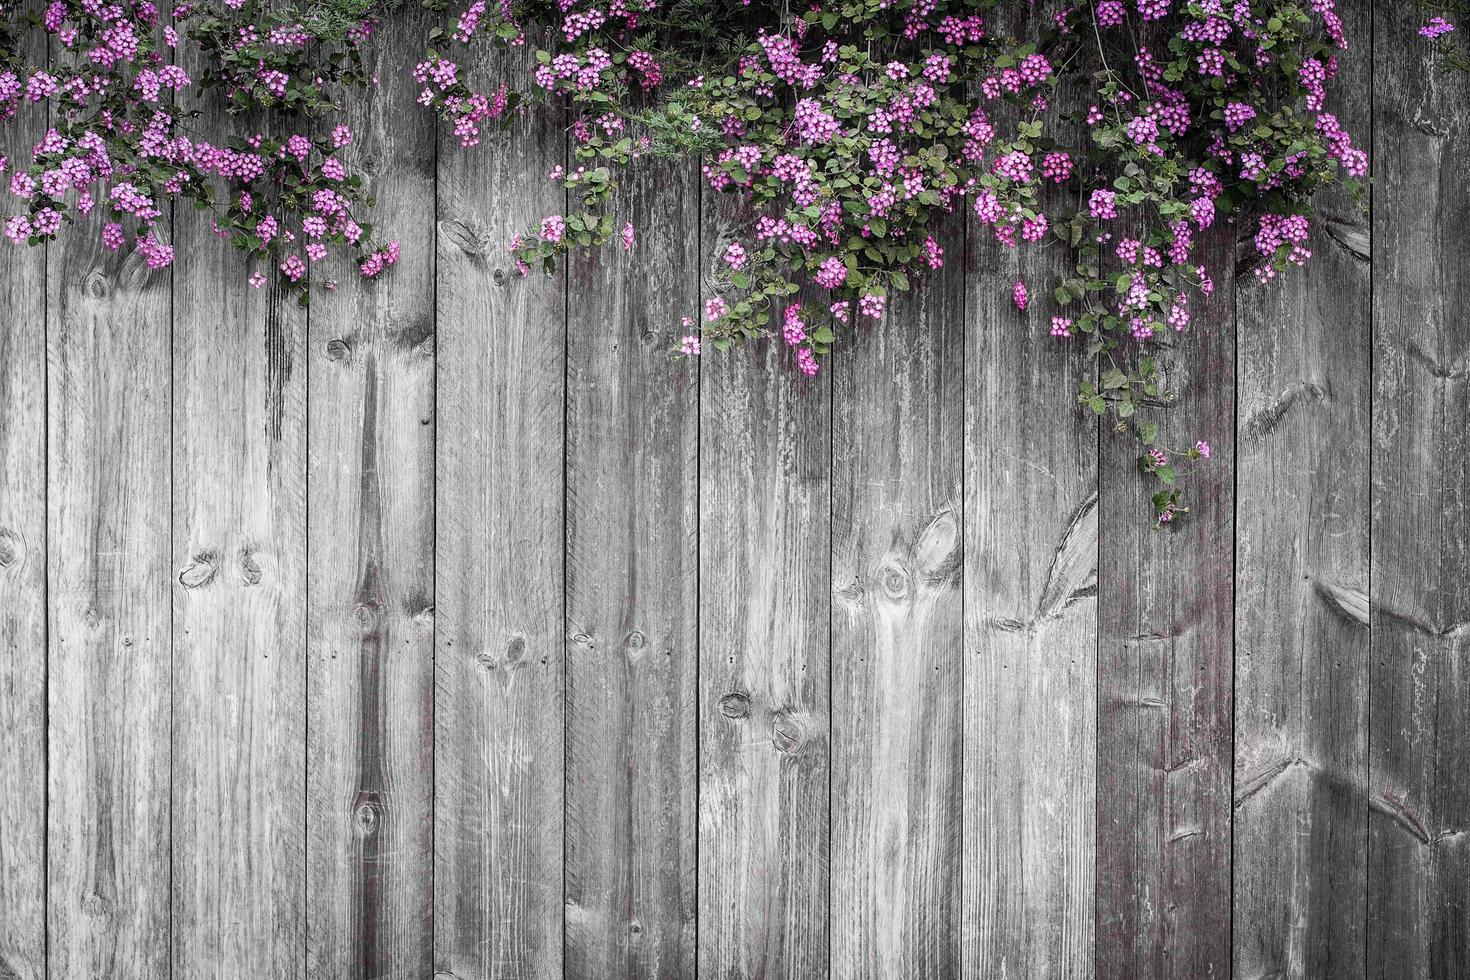 Beautiful violet floral blossom on a fence photo